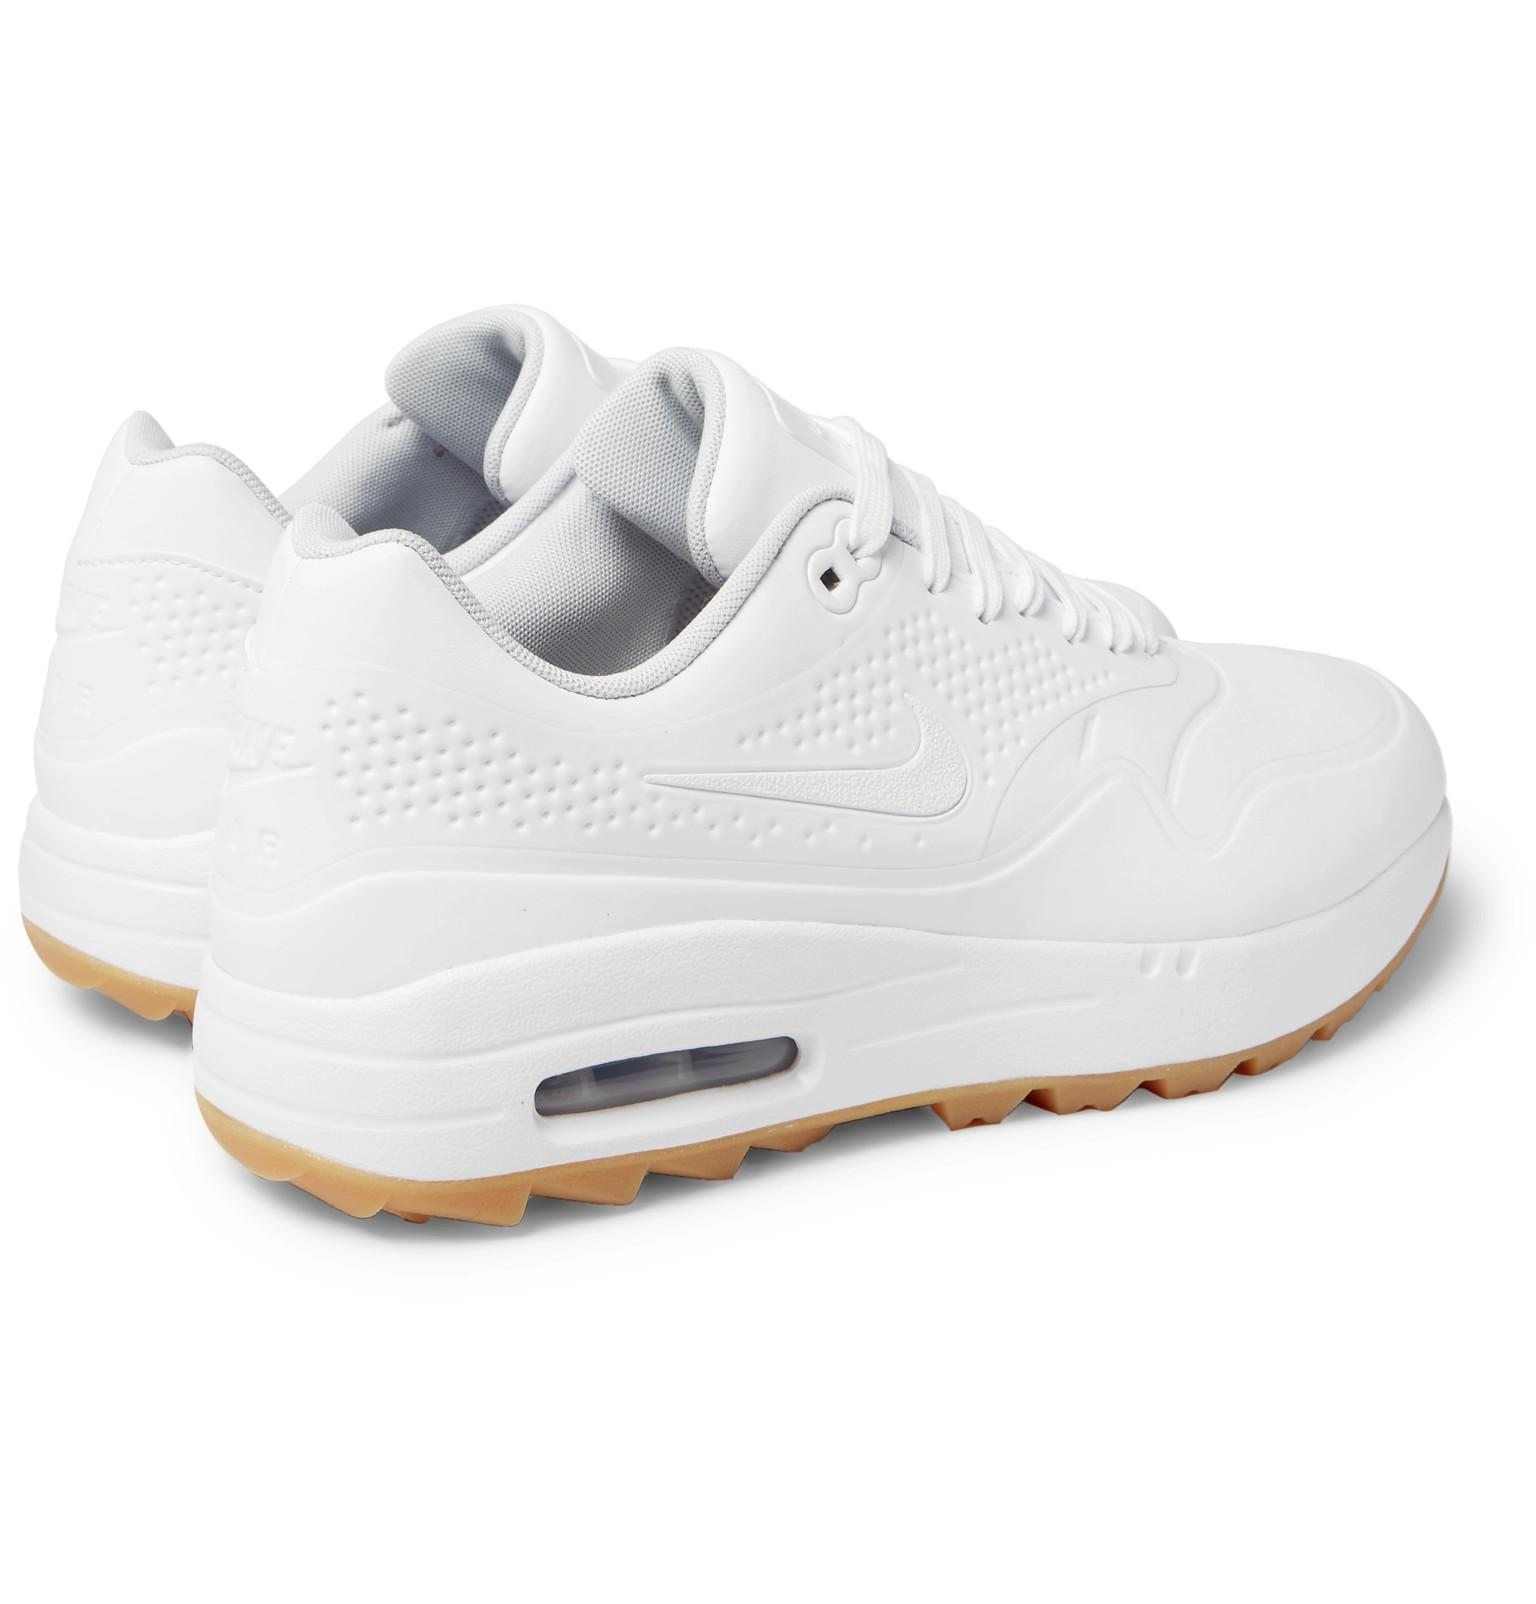 Nike Air Max 1g Coated Mesh Golf Shoes in White for Men - Lyst